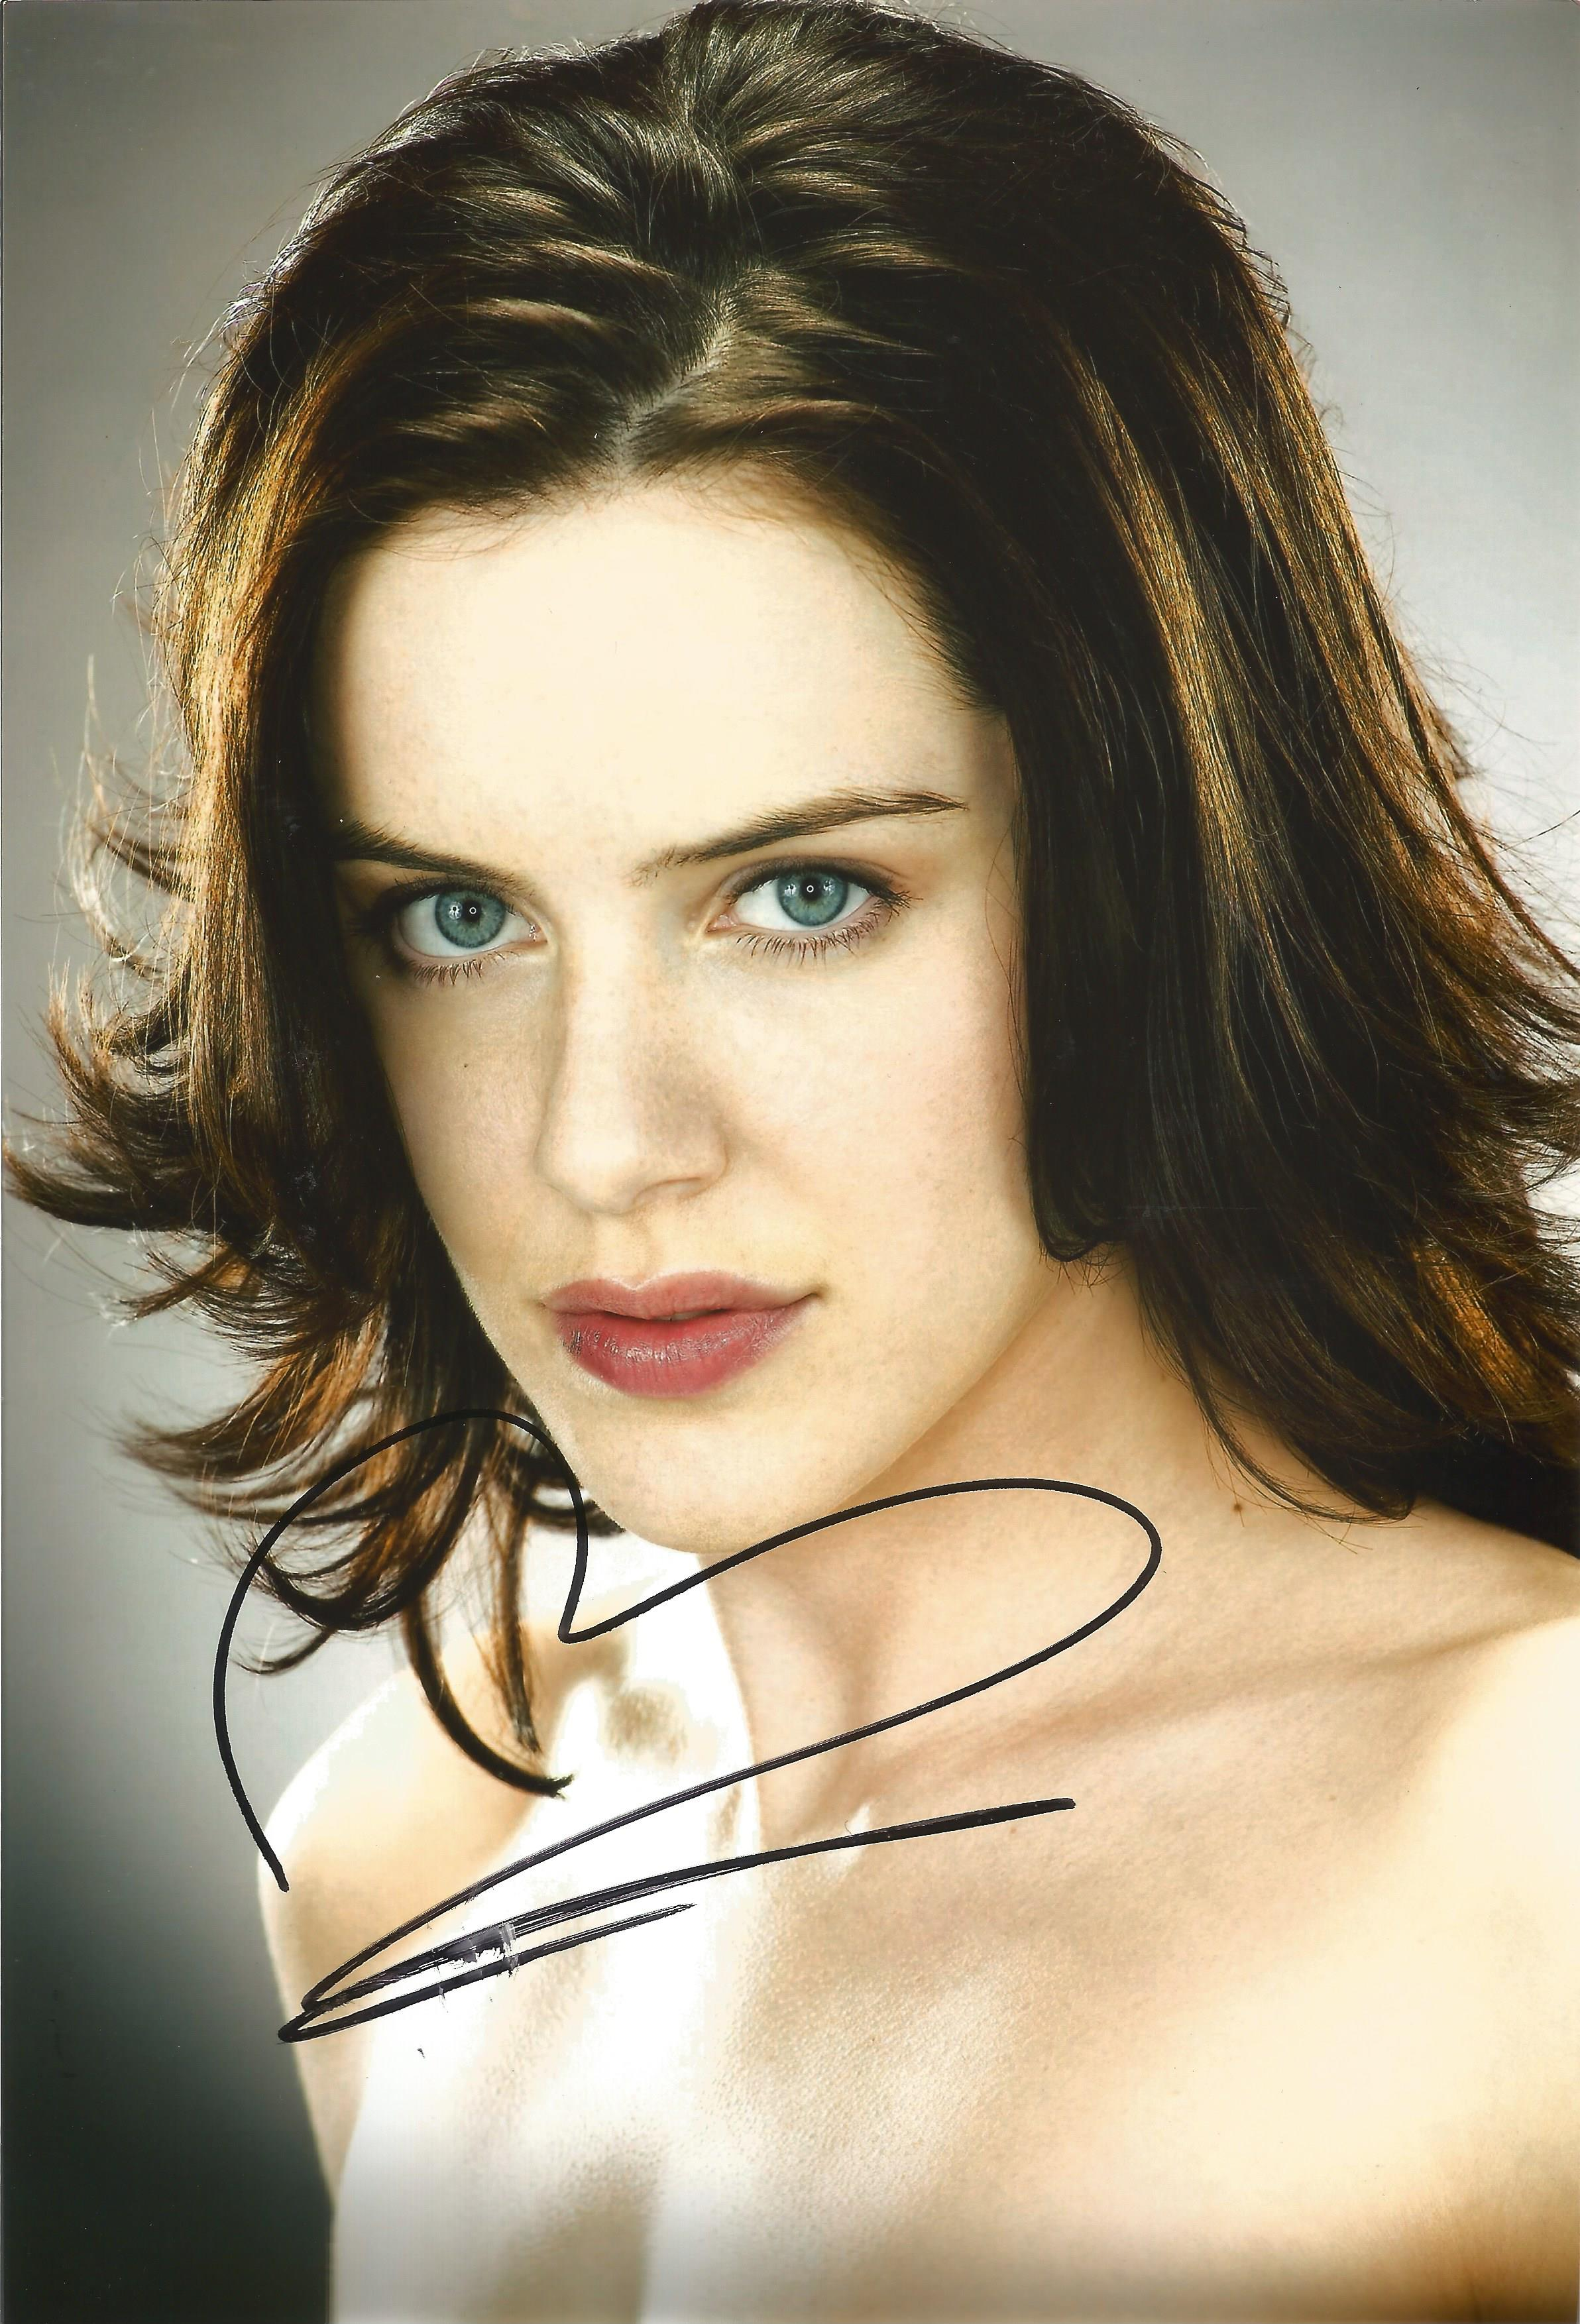 MICHELLE RYAN Actress signed 8x12 Photo . Good condition. All autographs come with a Certificate